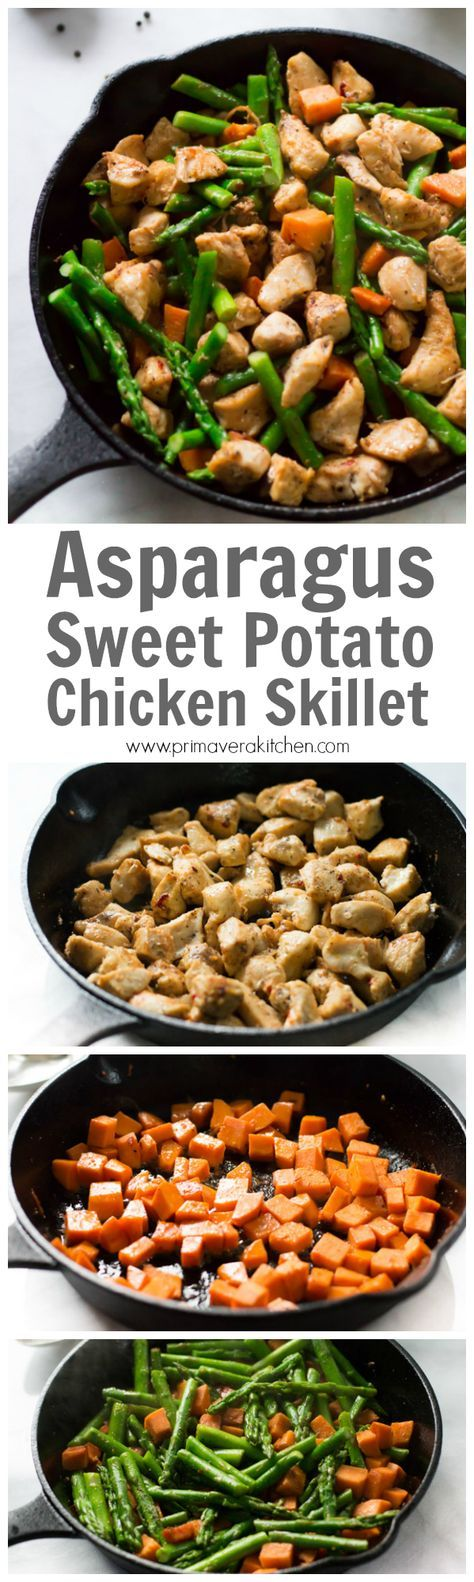 1000+ images about weeknight dinner recipes on Pinterest | Skillets ...